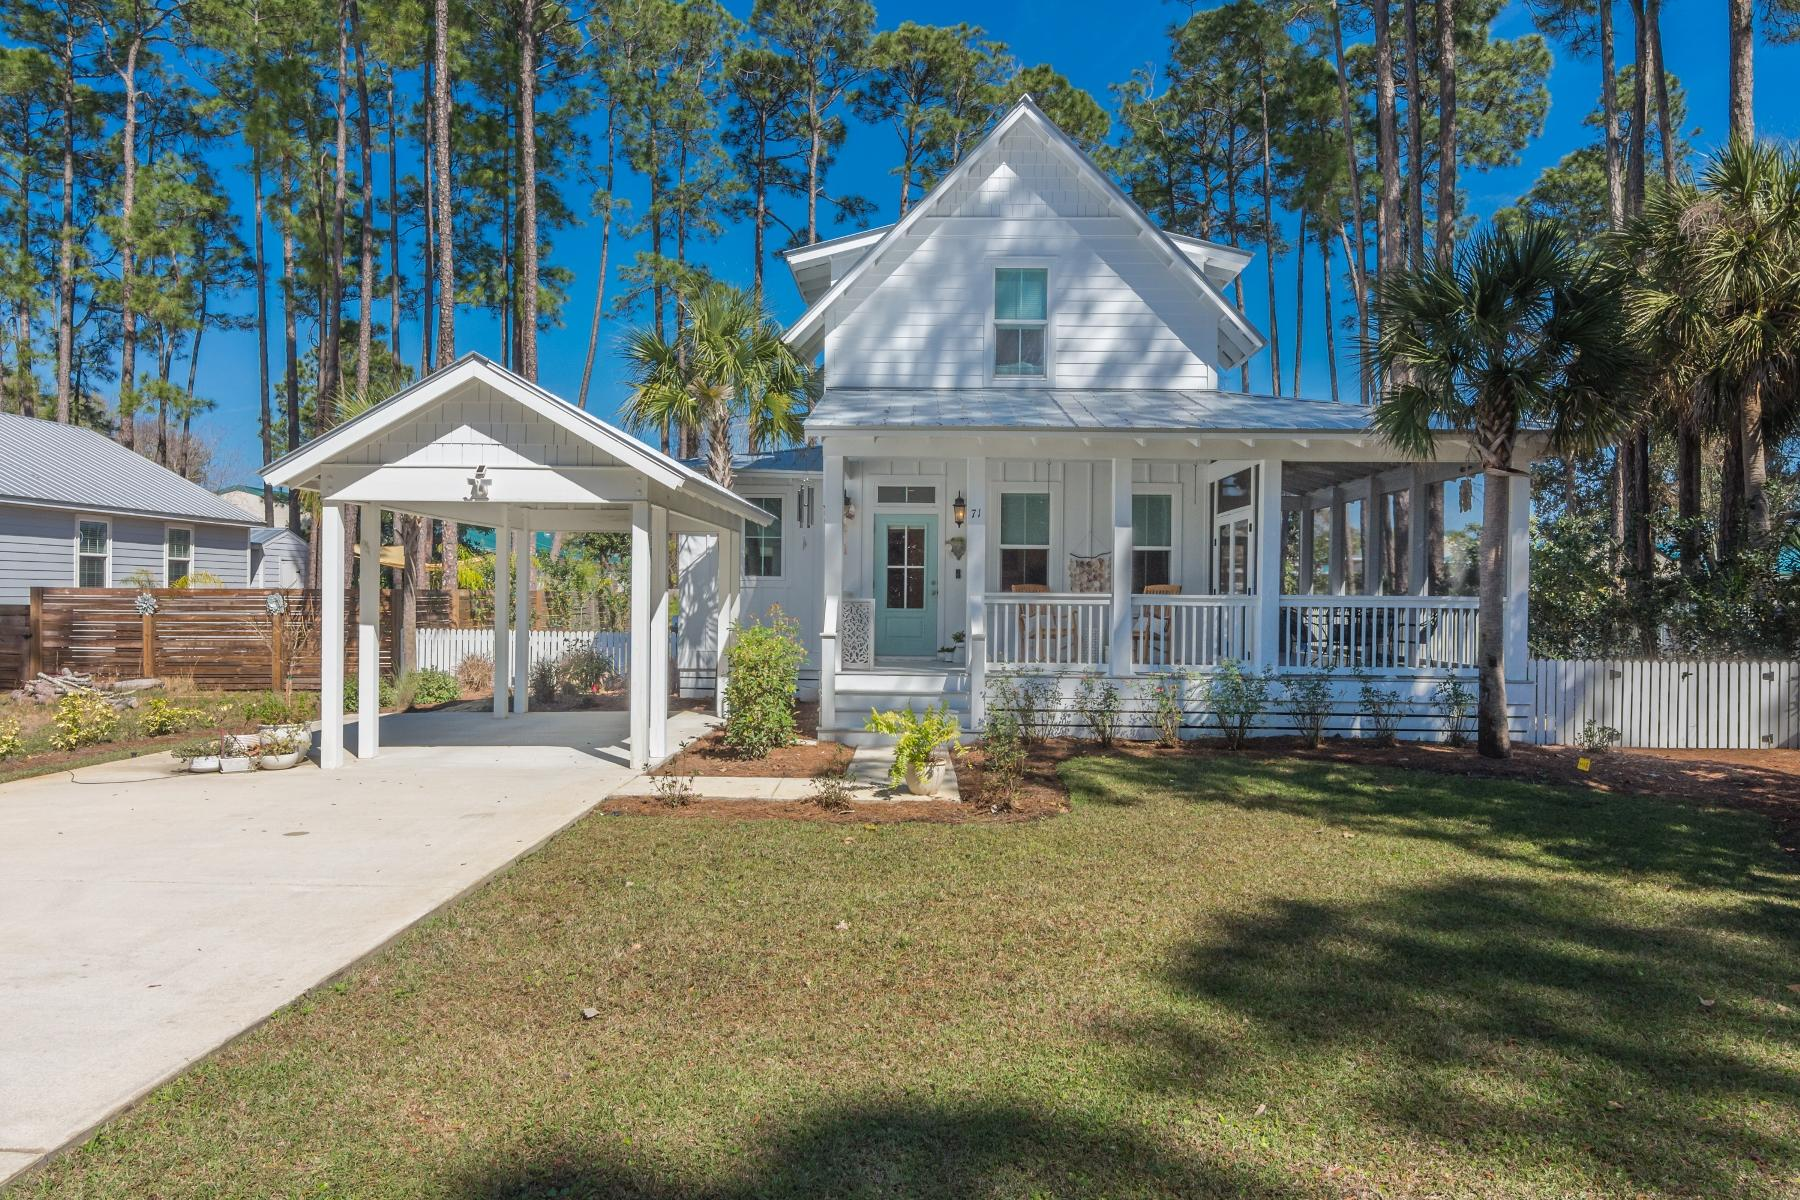 71 Sunrise Cir, Santa Rosa Beach, FL, 32459